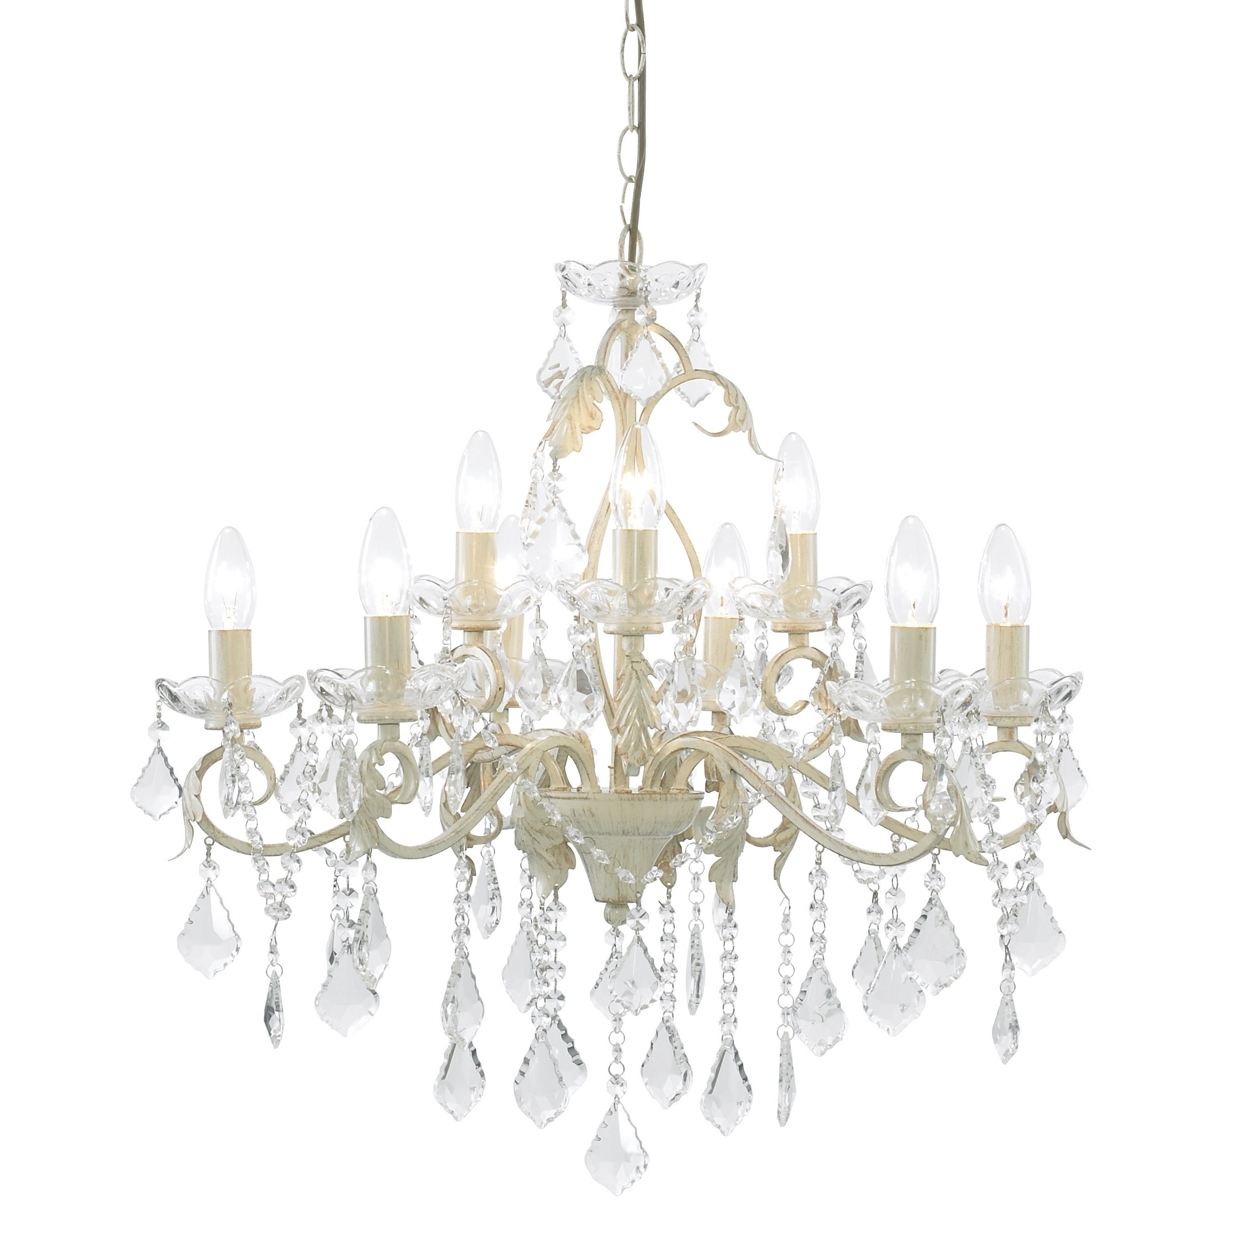 Affordable Modern Home Decor Regarding Cream Chandelier Lights (View 1 of 20)